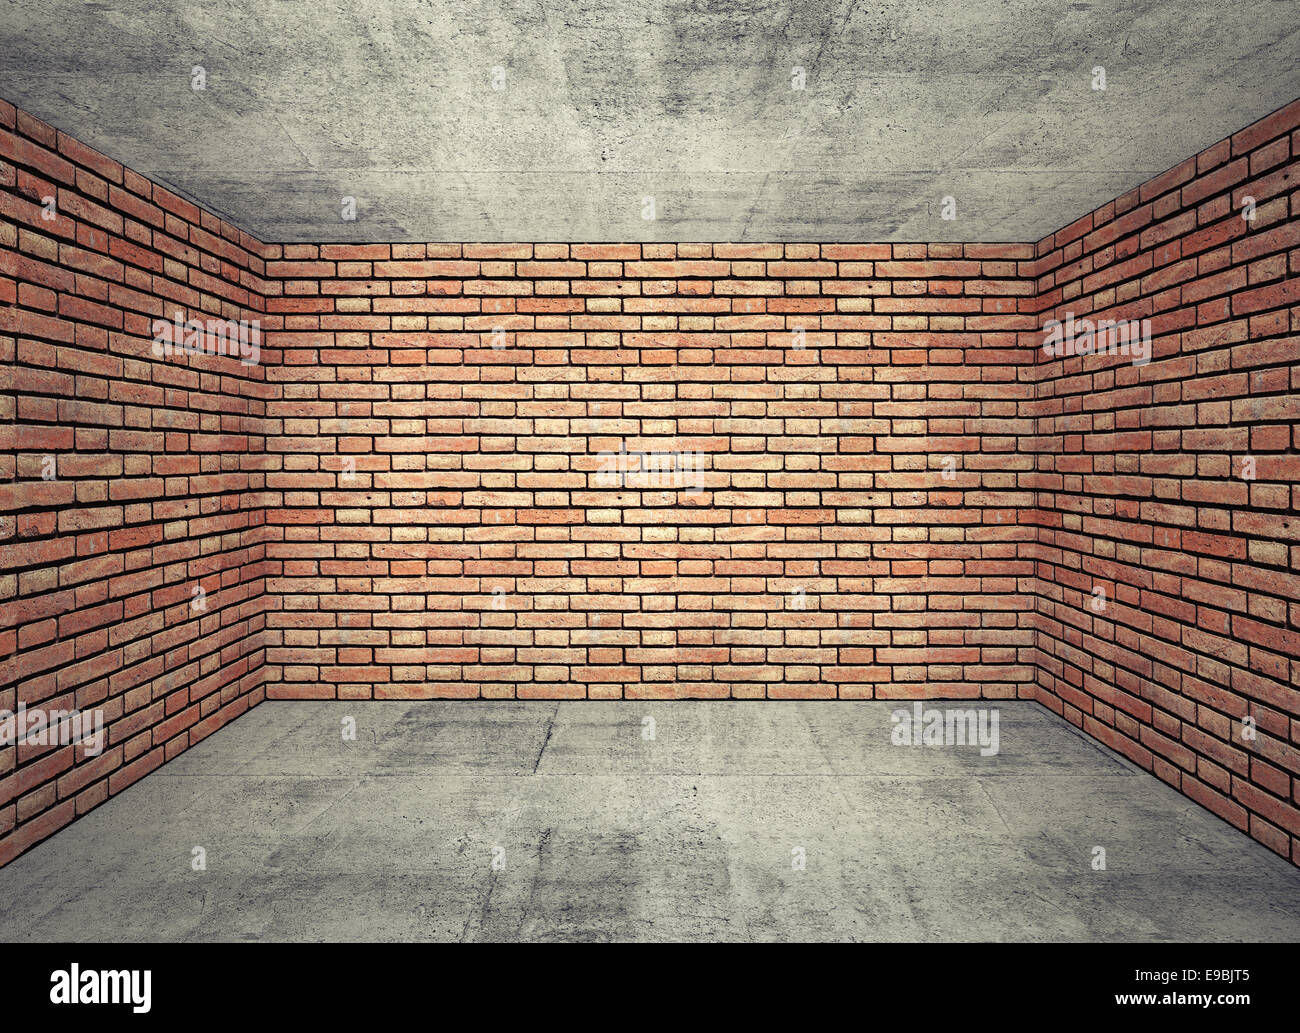 brick walls. Empty Room Interior With Red Brick Walls And Gray Concrete Floor. 3d Background Perspective Effect